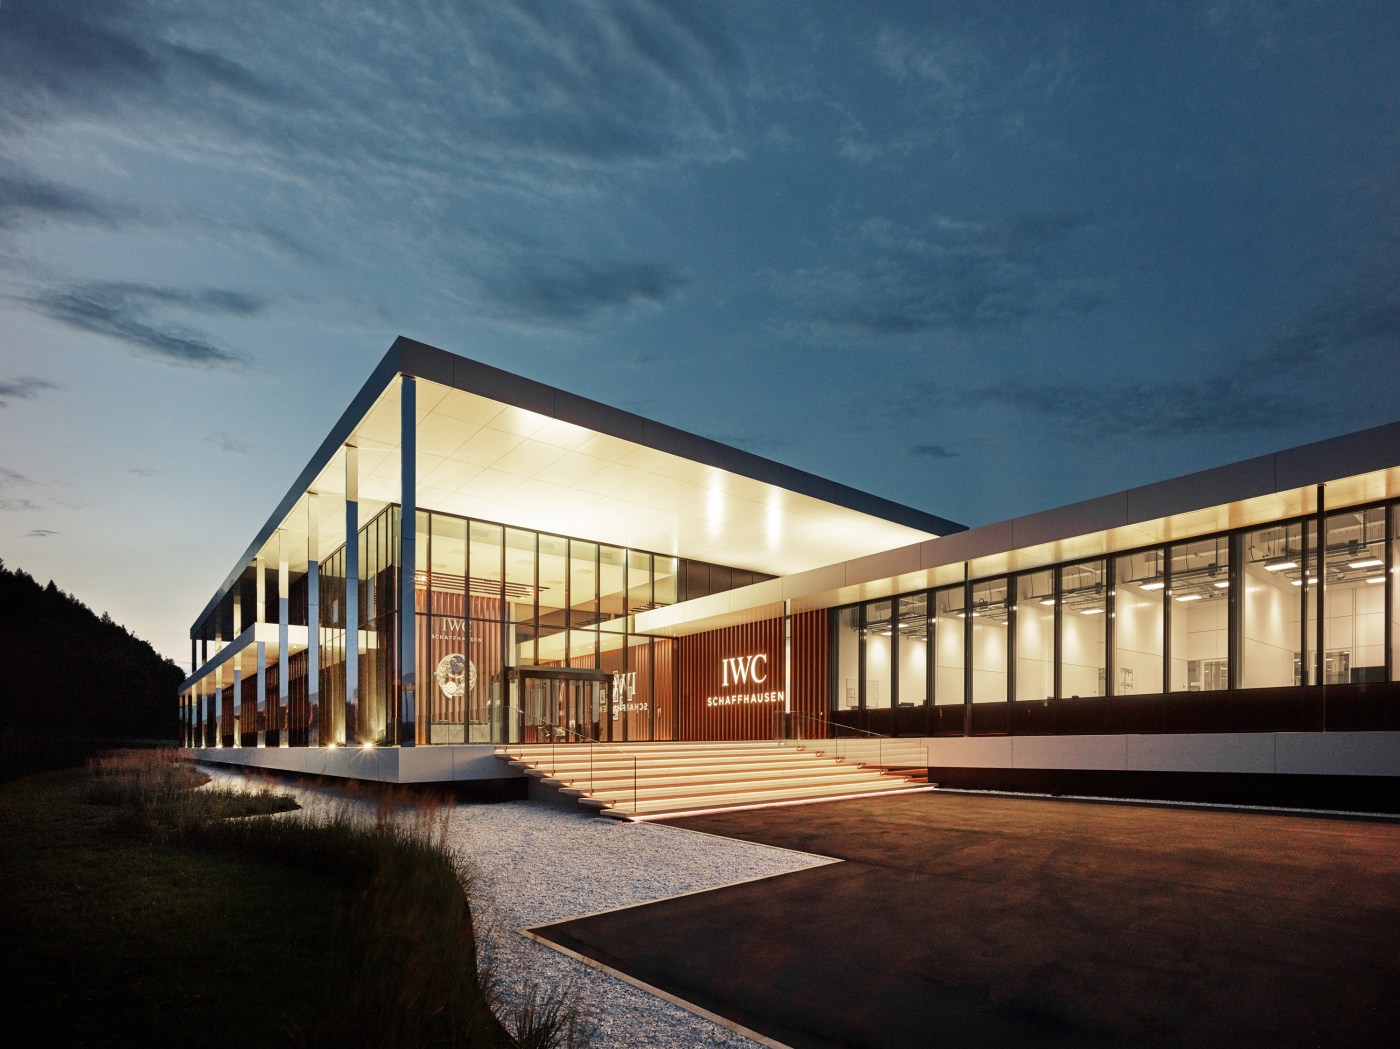 IWC Manufacturing Center exterior view main entrance at night